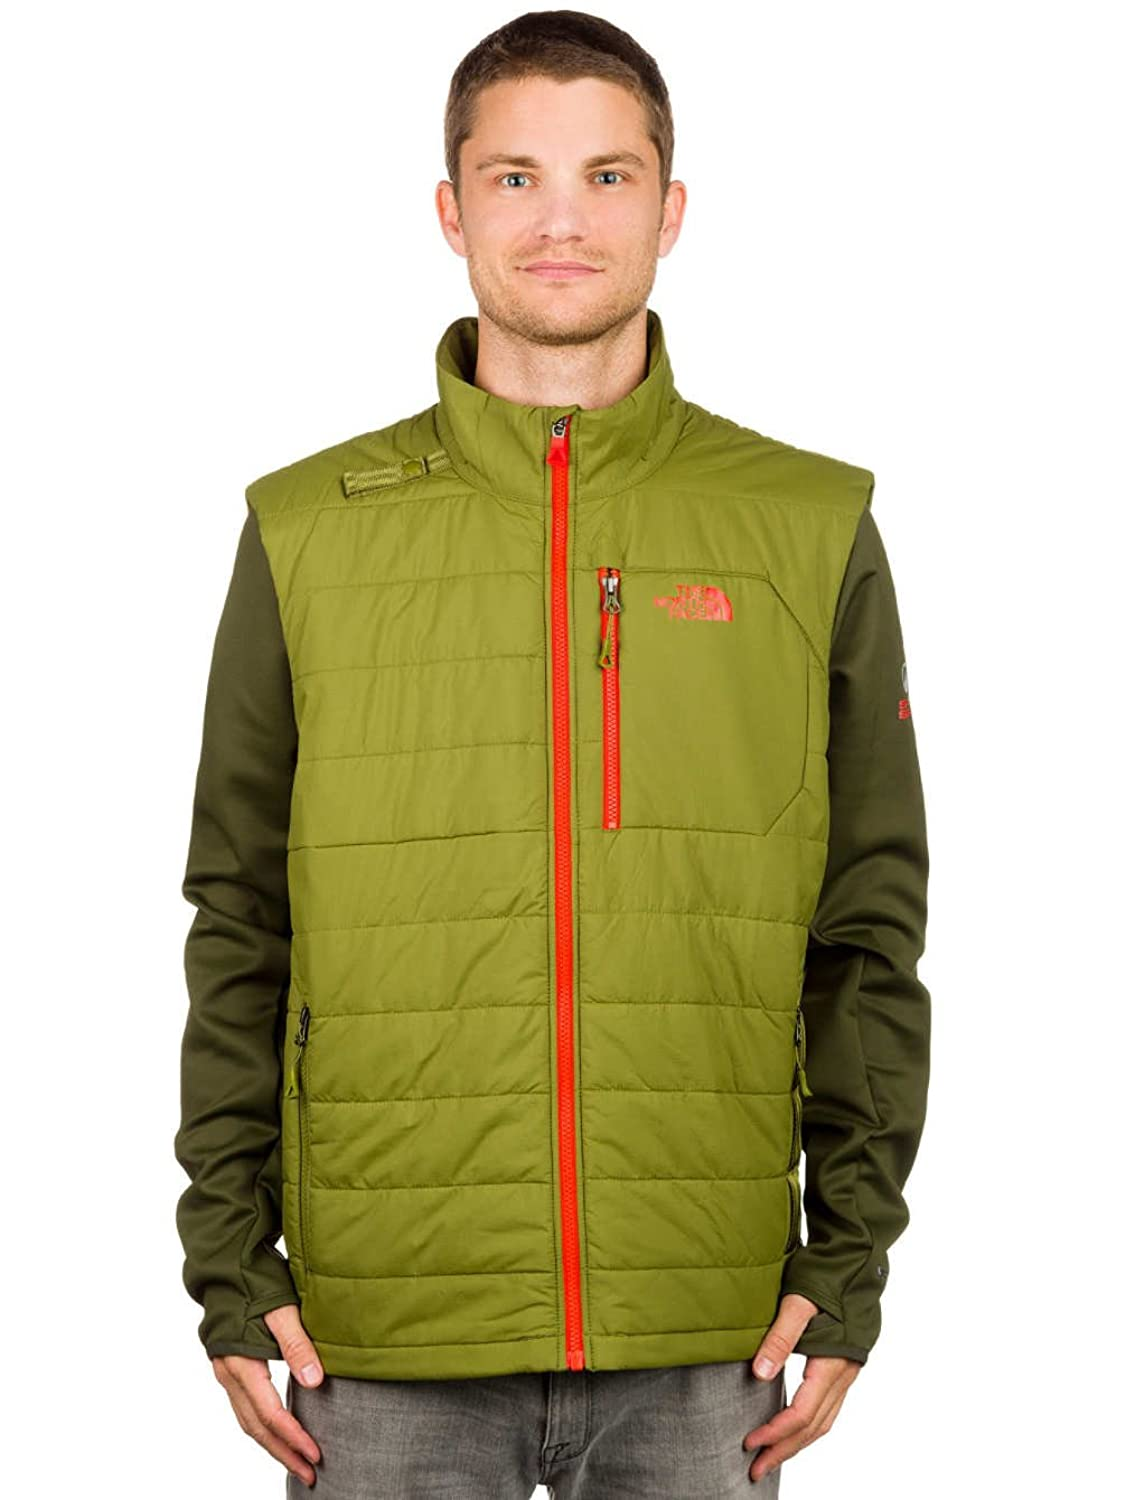 Herren Fleecejacke The North Face Pemby Hybrid Fleece Jacket jetzt bestellen